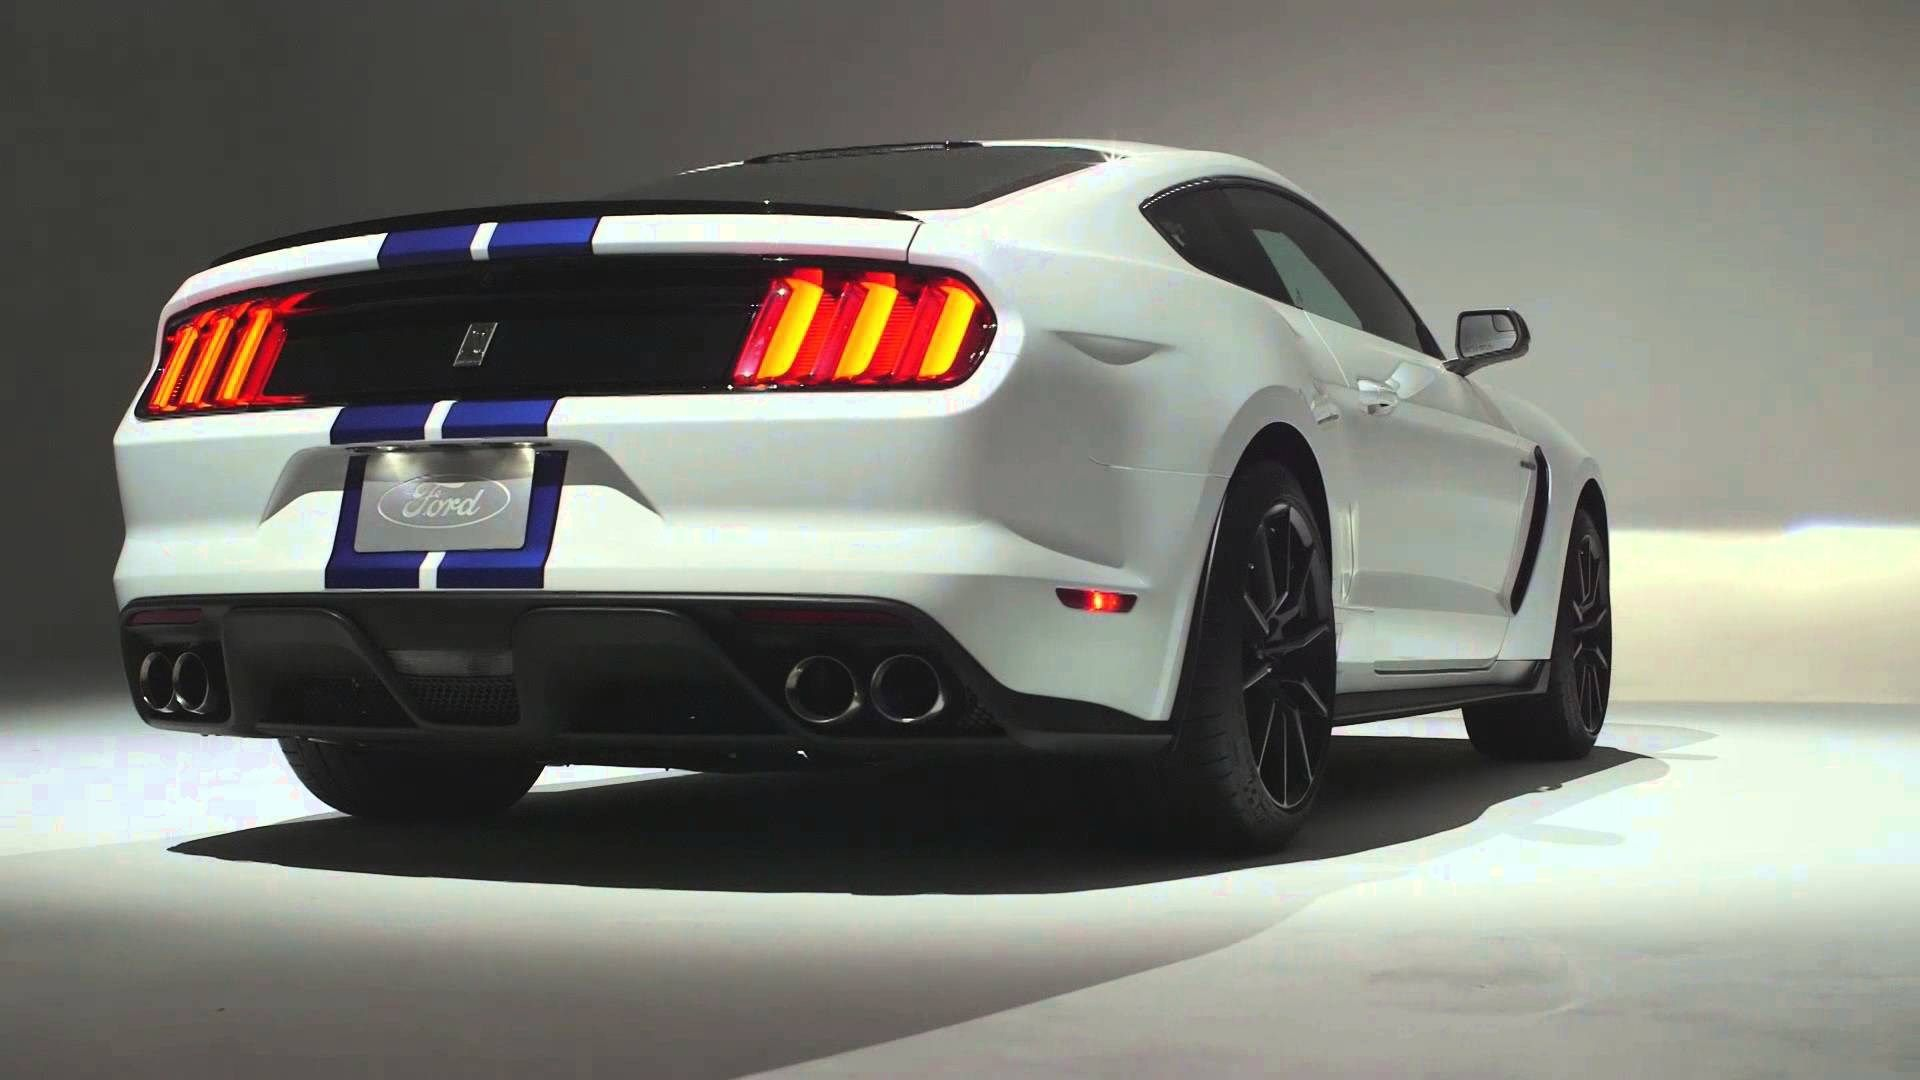 Must see Wallpaper High Quality Mustang - f1c9102b4c9794773d7cfb658aed7fec  Trends_421657.jpg